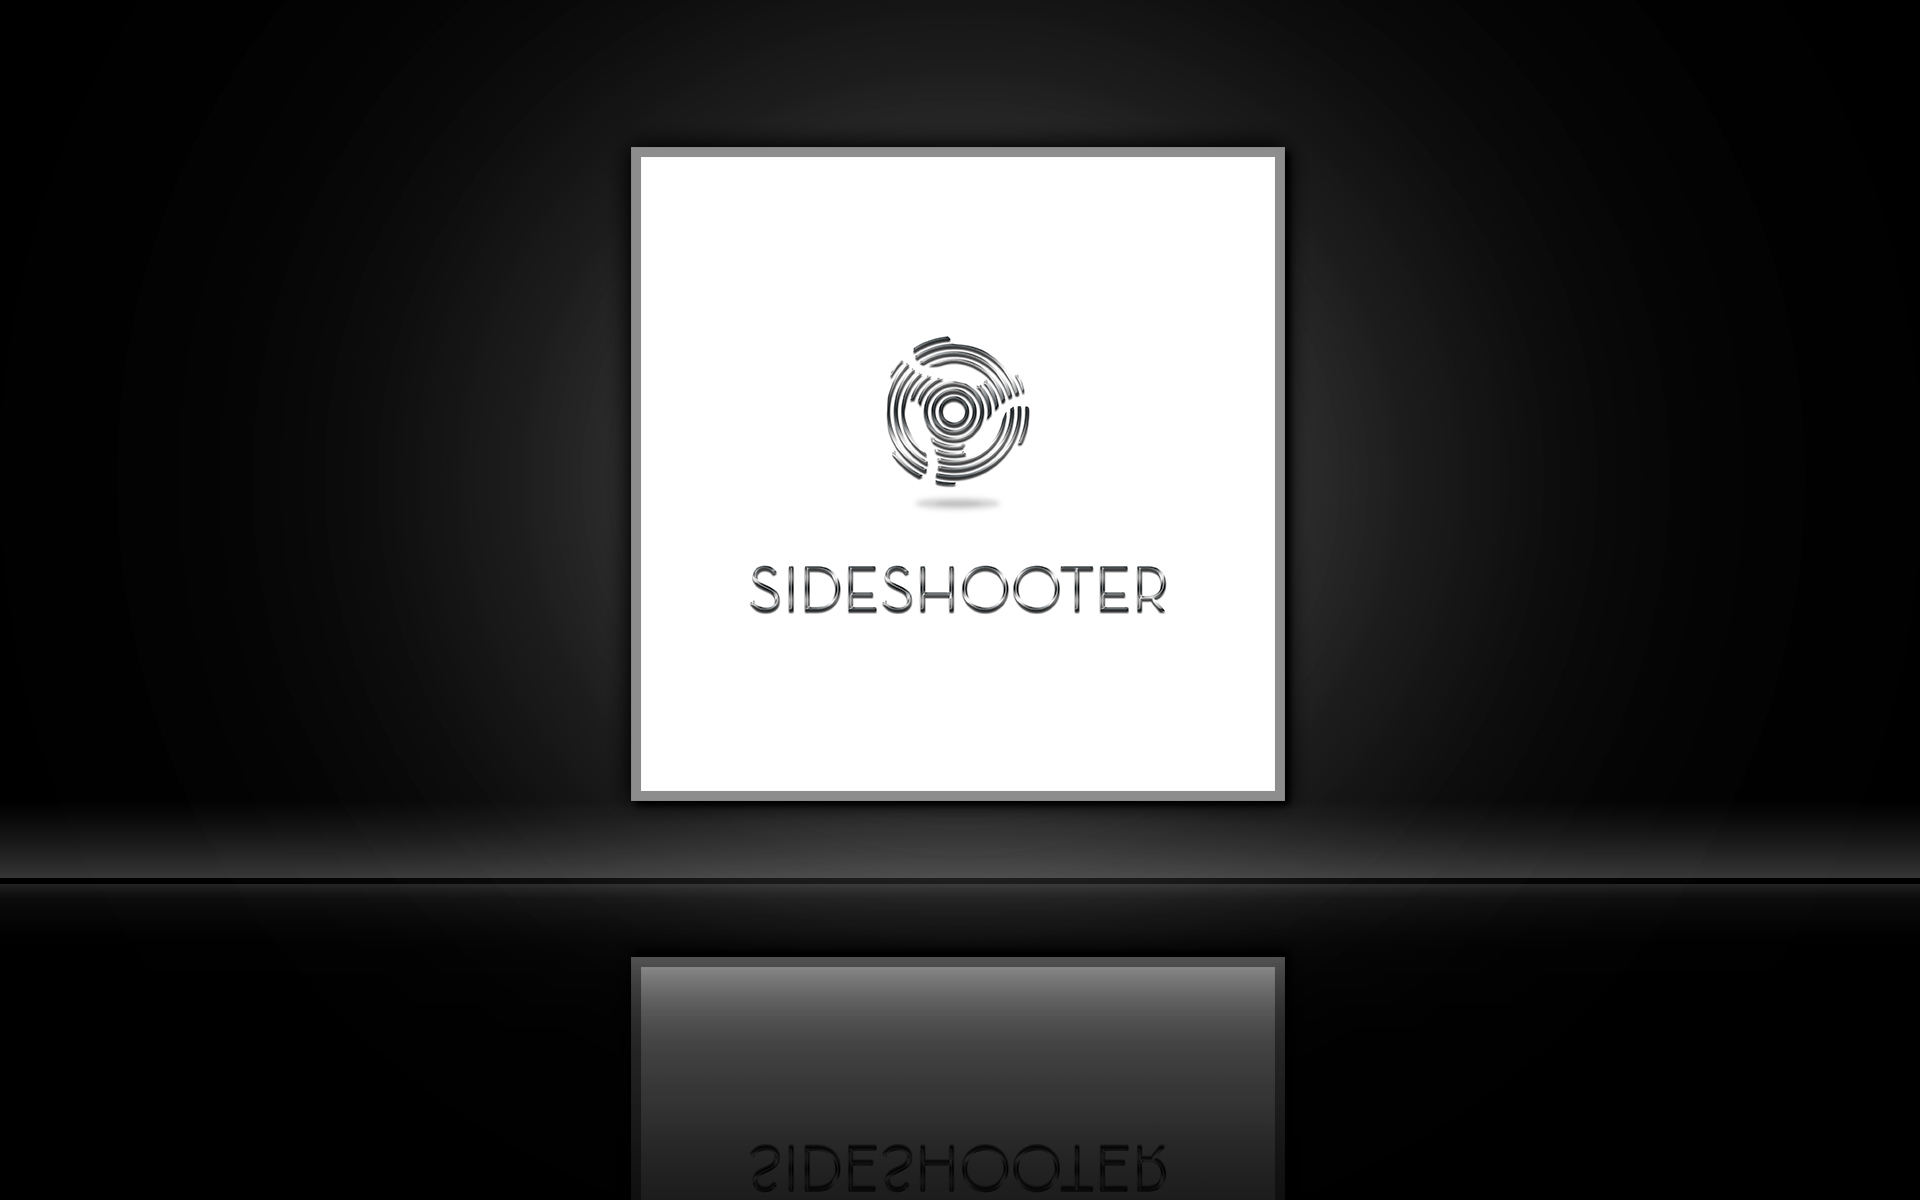 Sideshooter Band Logo by Graham Hnedak Brand G Creative 10 JAN 2016.jpg